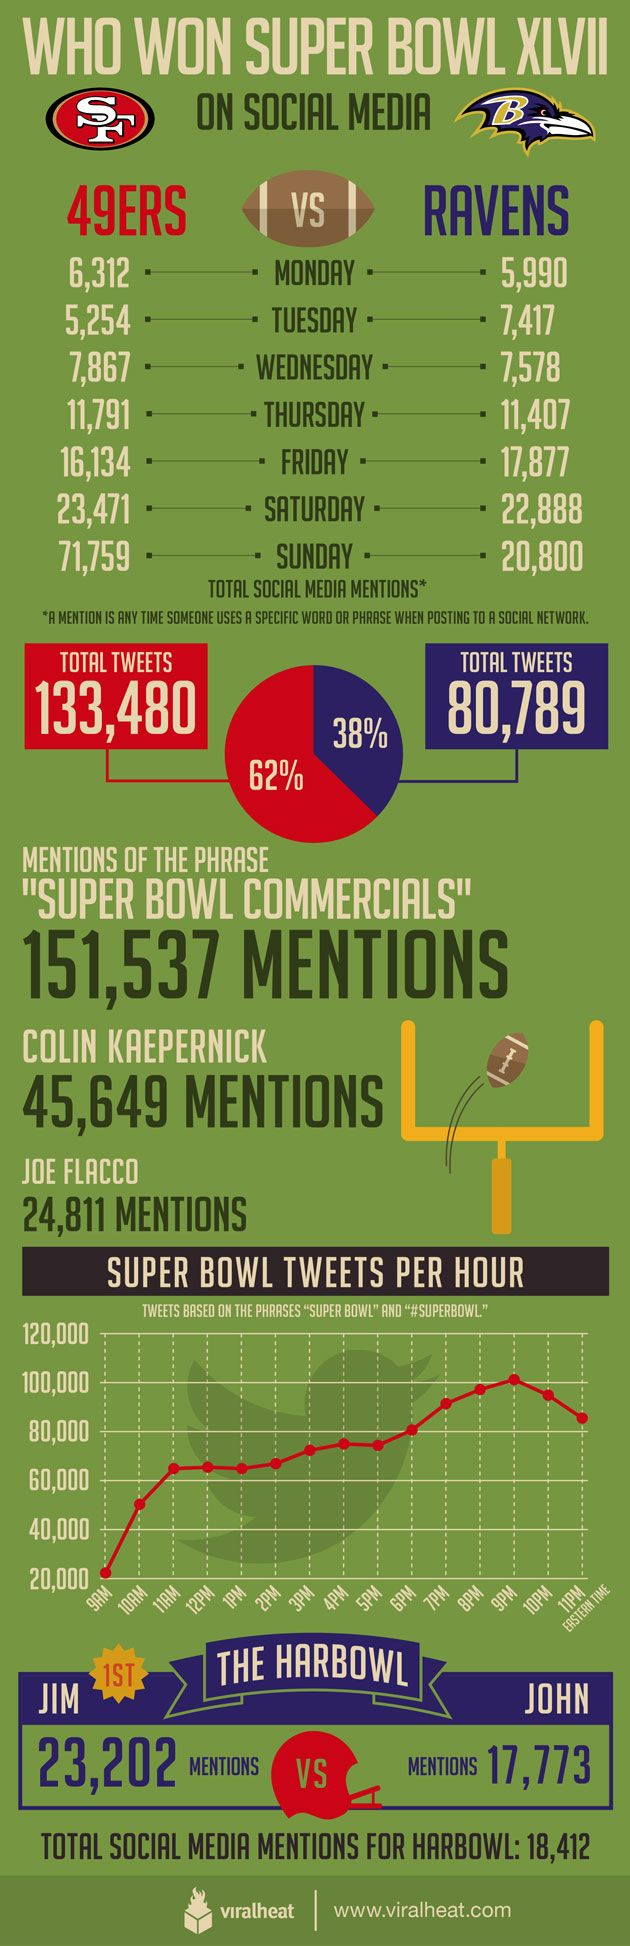 Who won the social media Super Bowl?